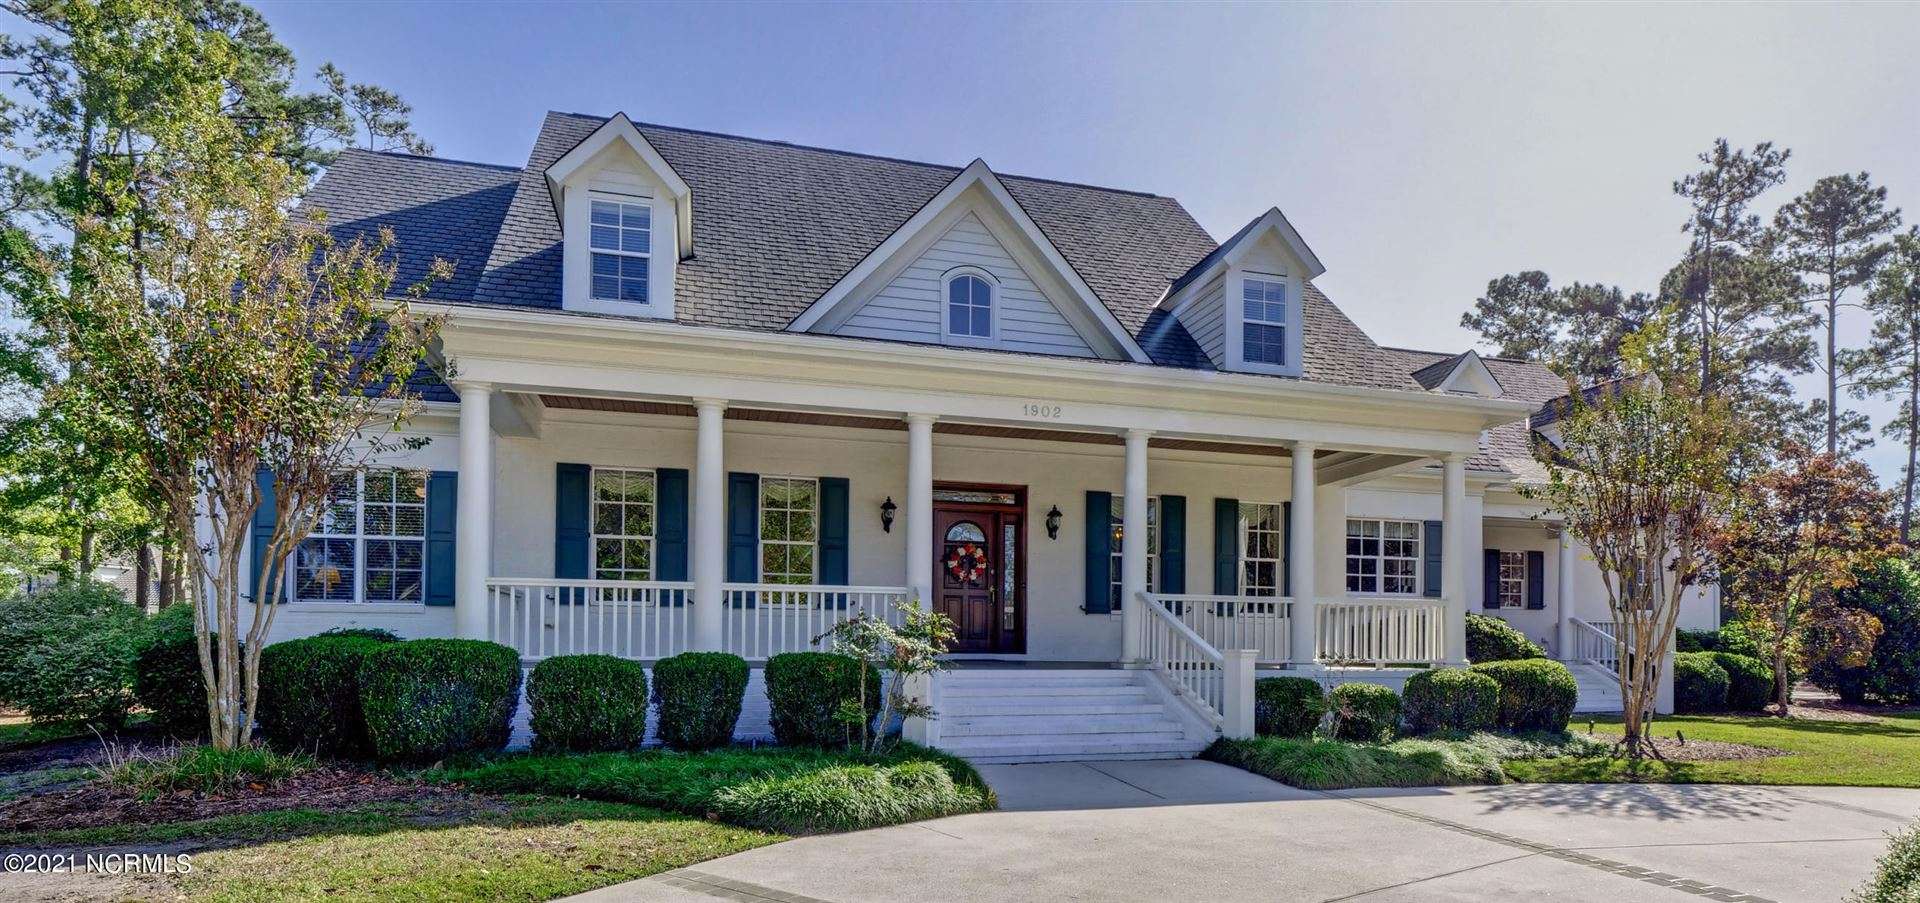 Photo for 1902 Summer Sands Place, Wilmington, NC 28405 (MLS # 100243680)